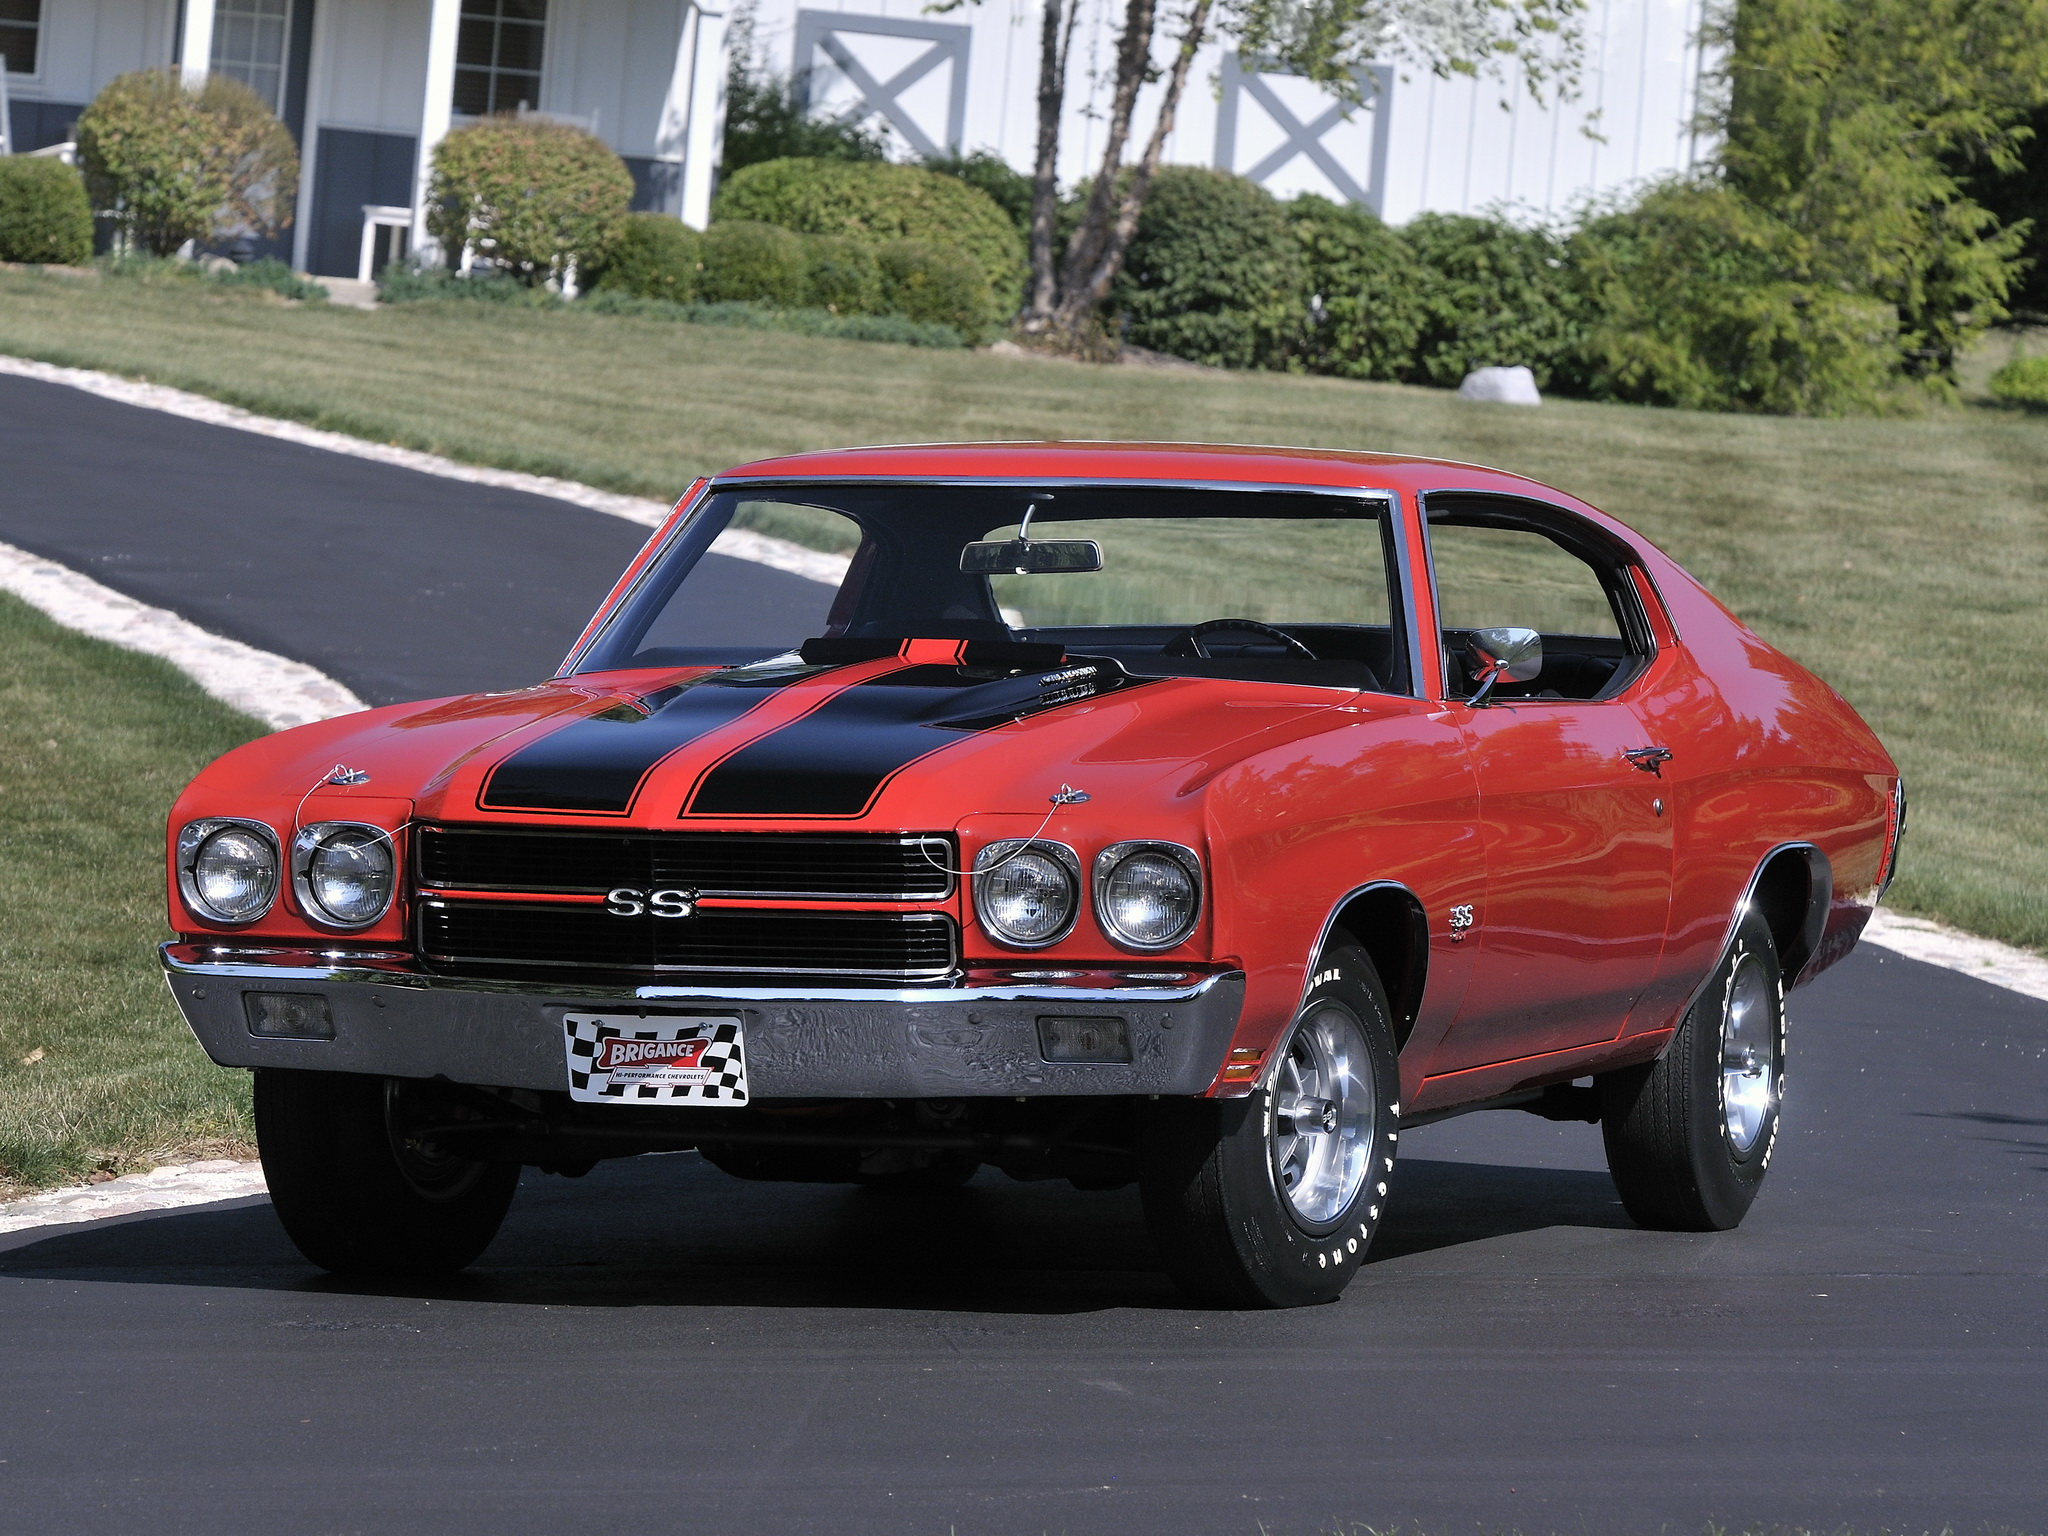 1970 Chevrolet Chevelle SS 454 LS6 Hardtop Coupe muscle ...  1970 Chevrolet ...